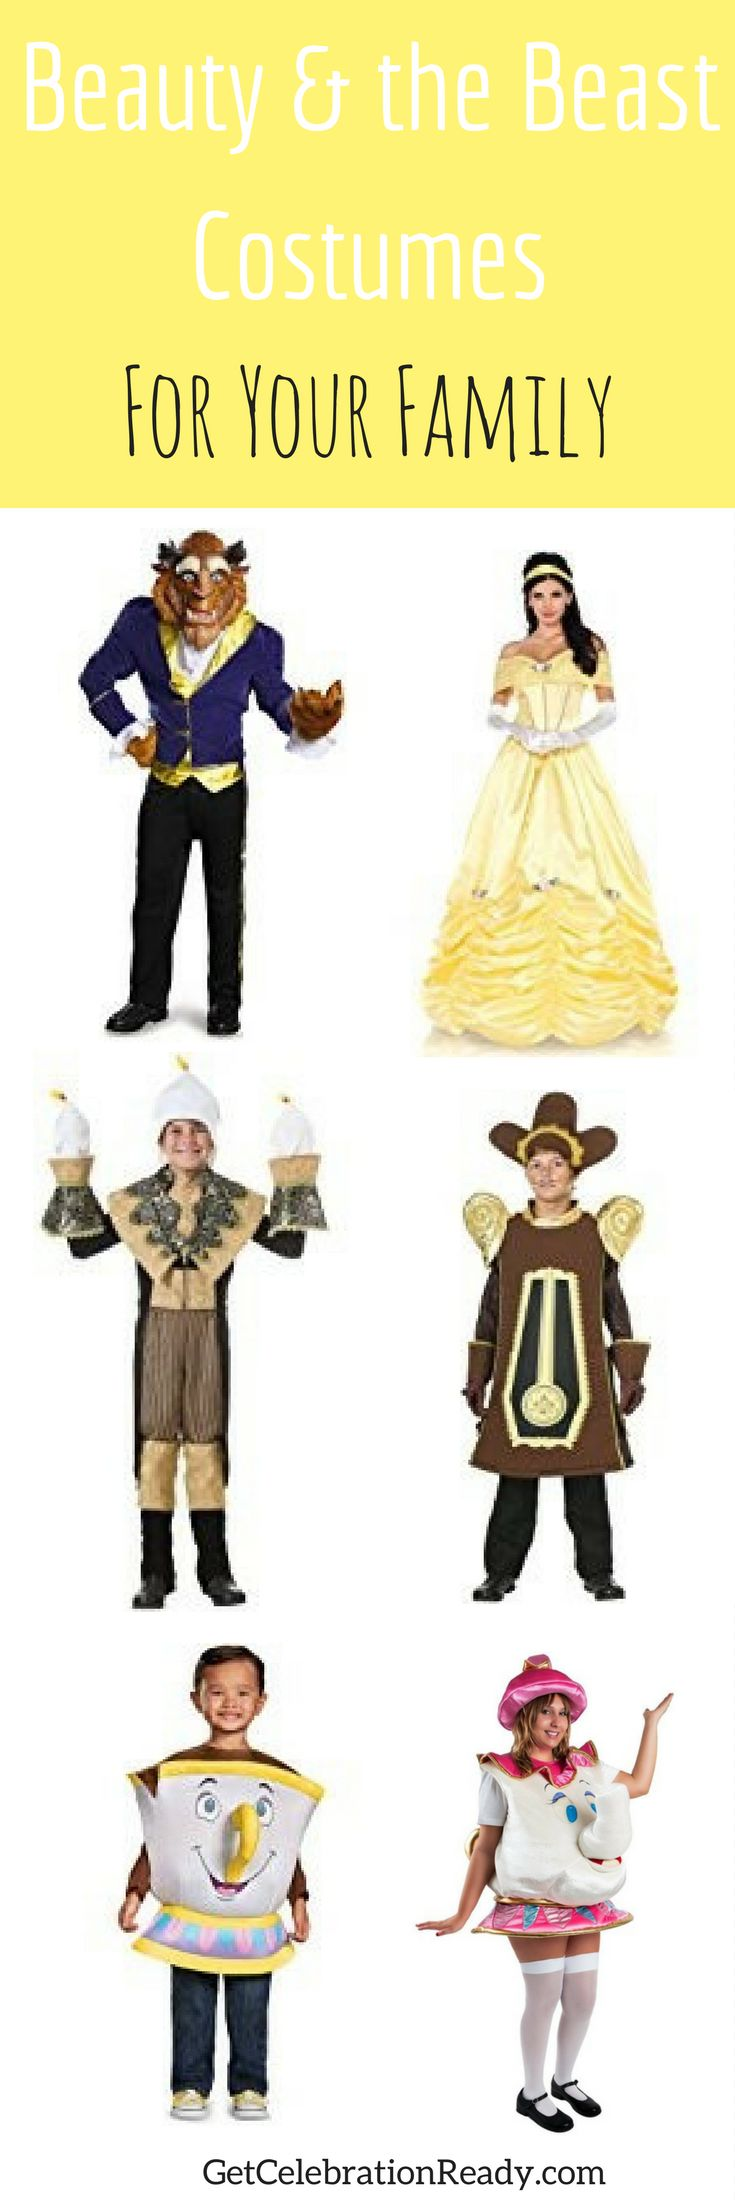 Beauty and the Beast Costumes are great for families because of the extra characters that come to life in the movie. Lots of fun costumes for all ages. This is a very popular Halloween costume theme this year. Also great couples costumes just using Belle Costume and the Beast Costume.